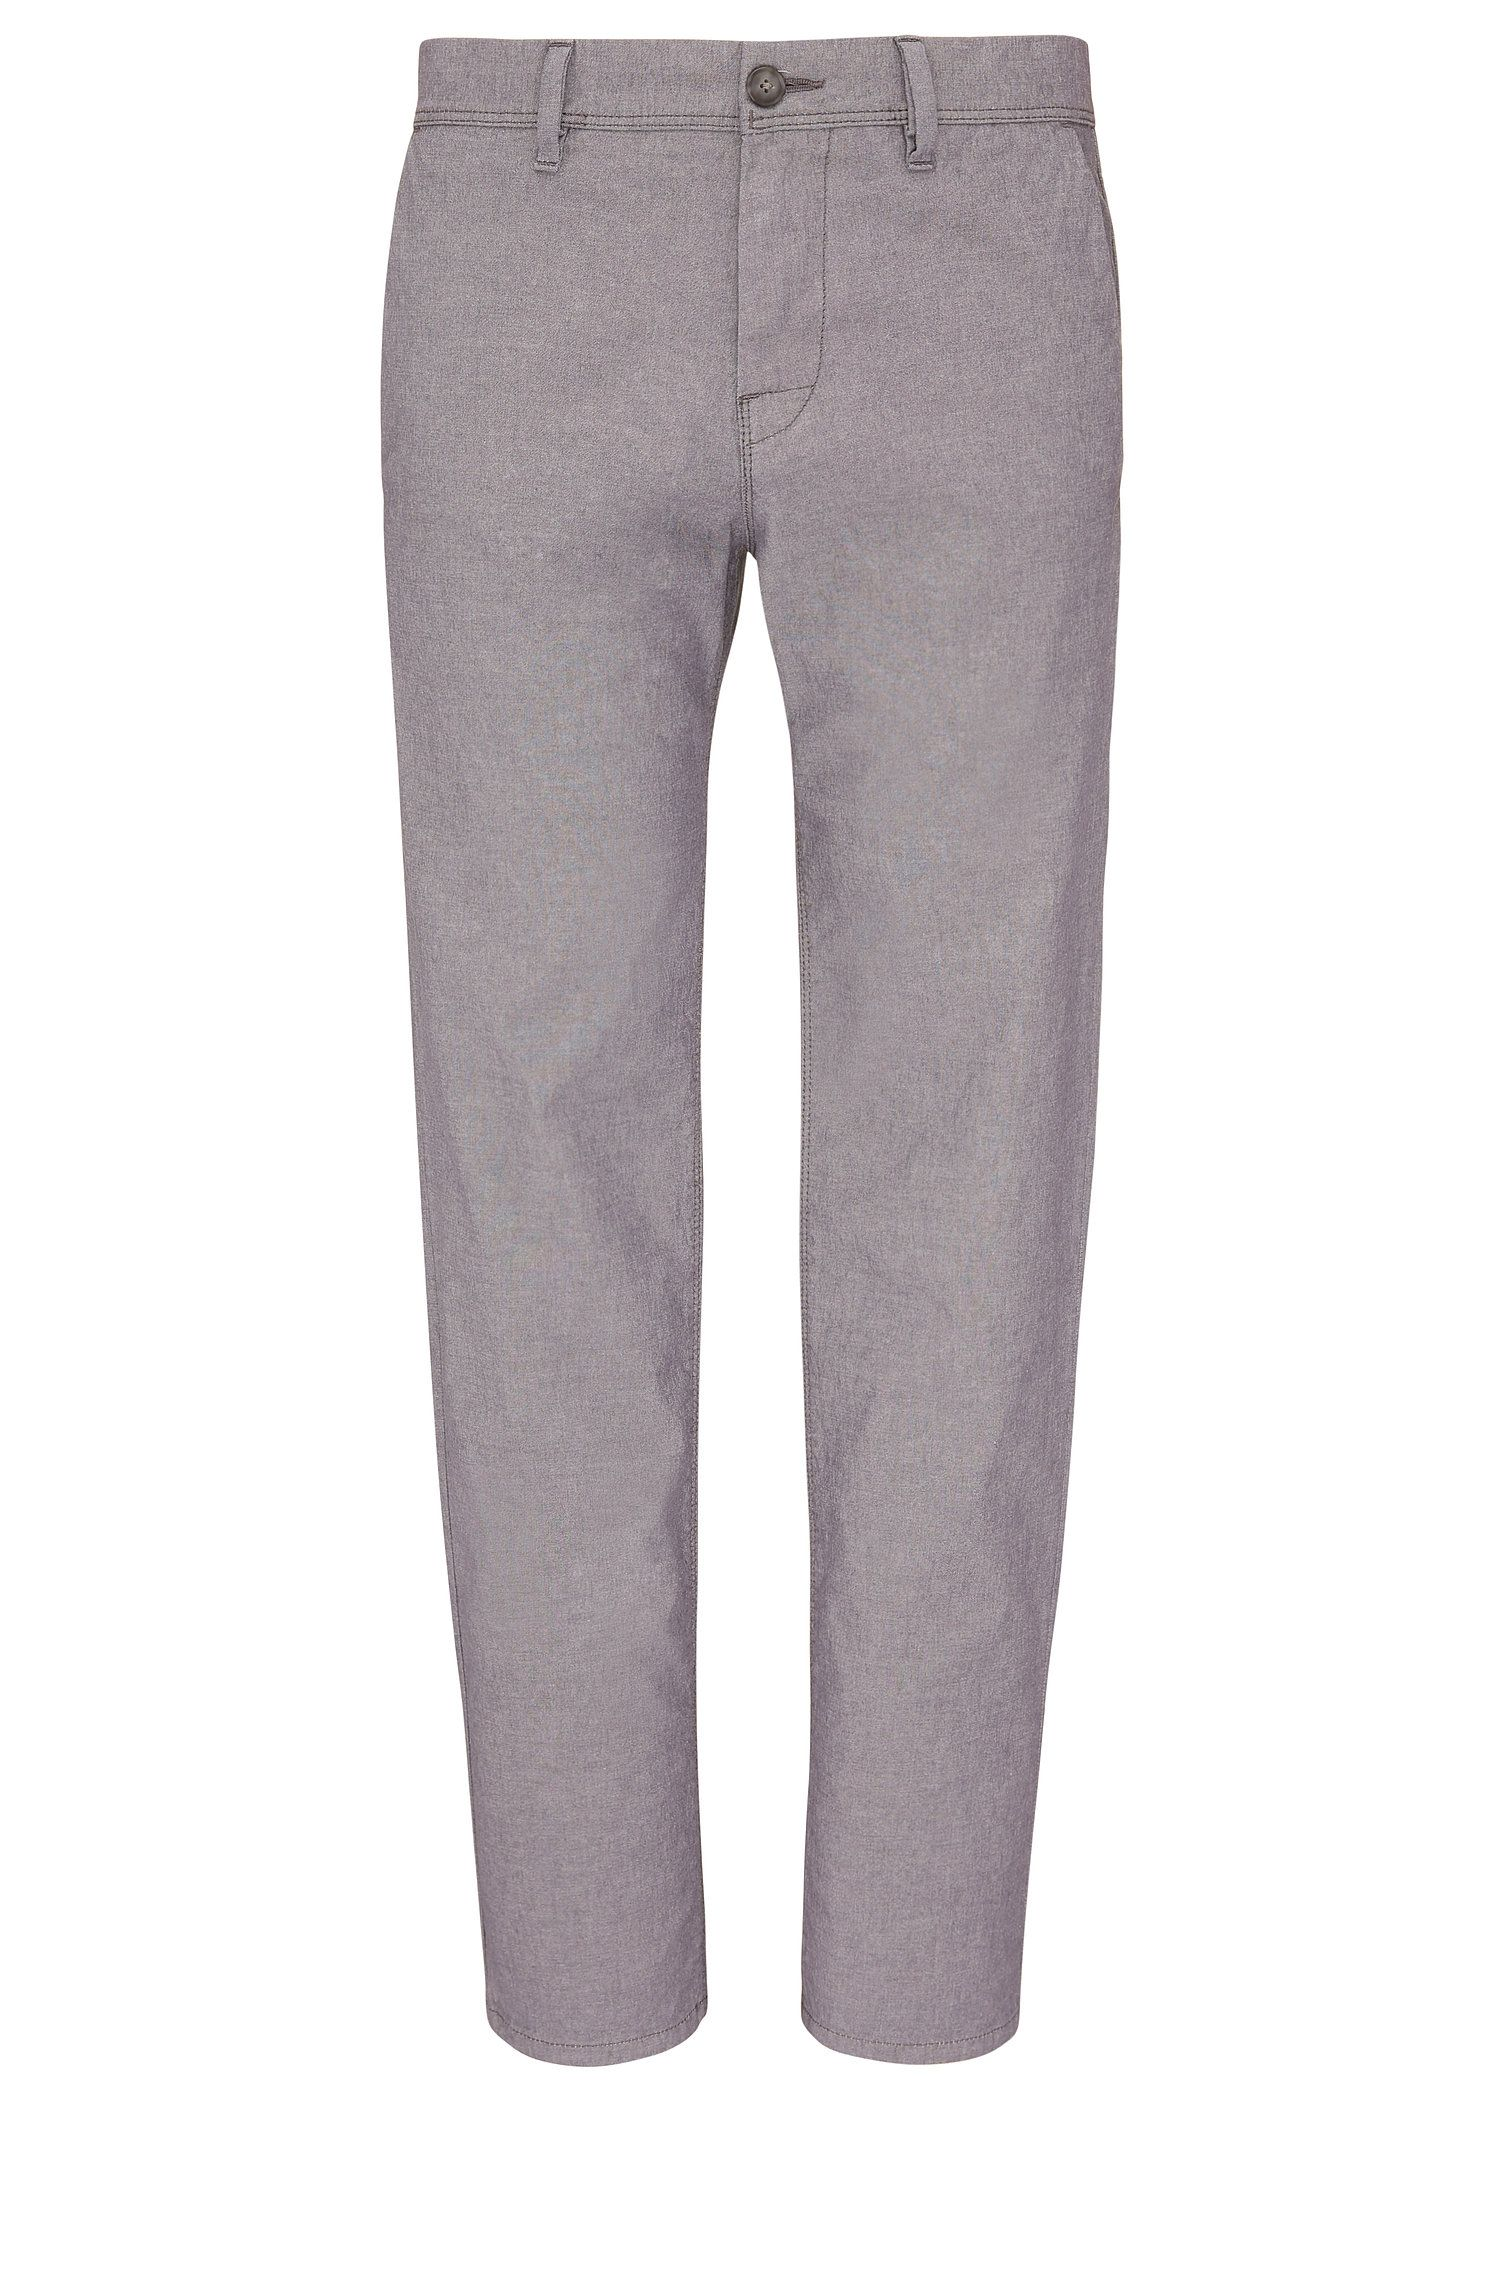 Stretch Cotton Pant, Tapered Fit   Stapered W